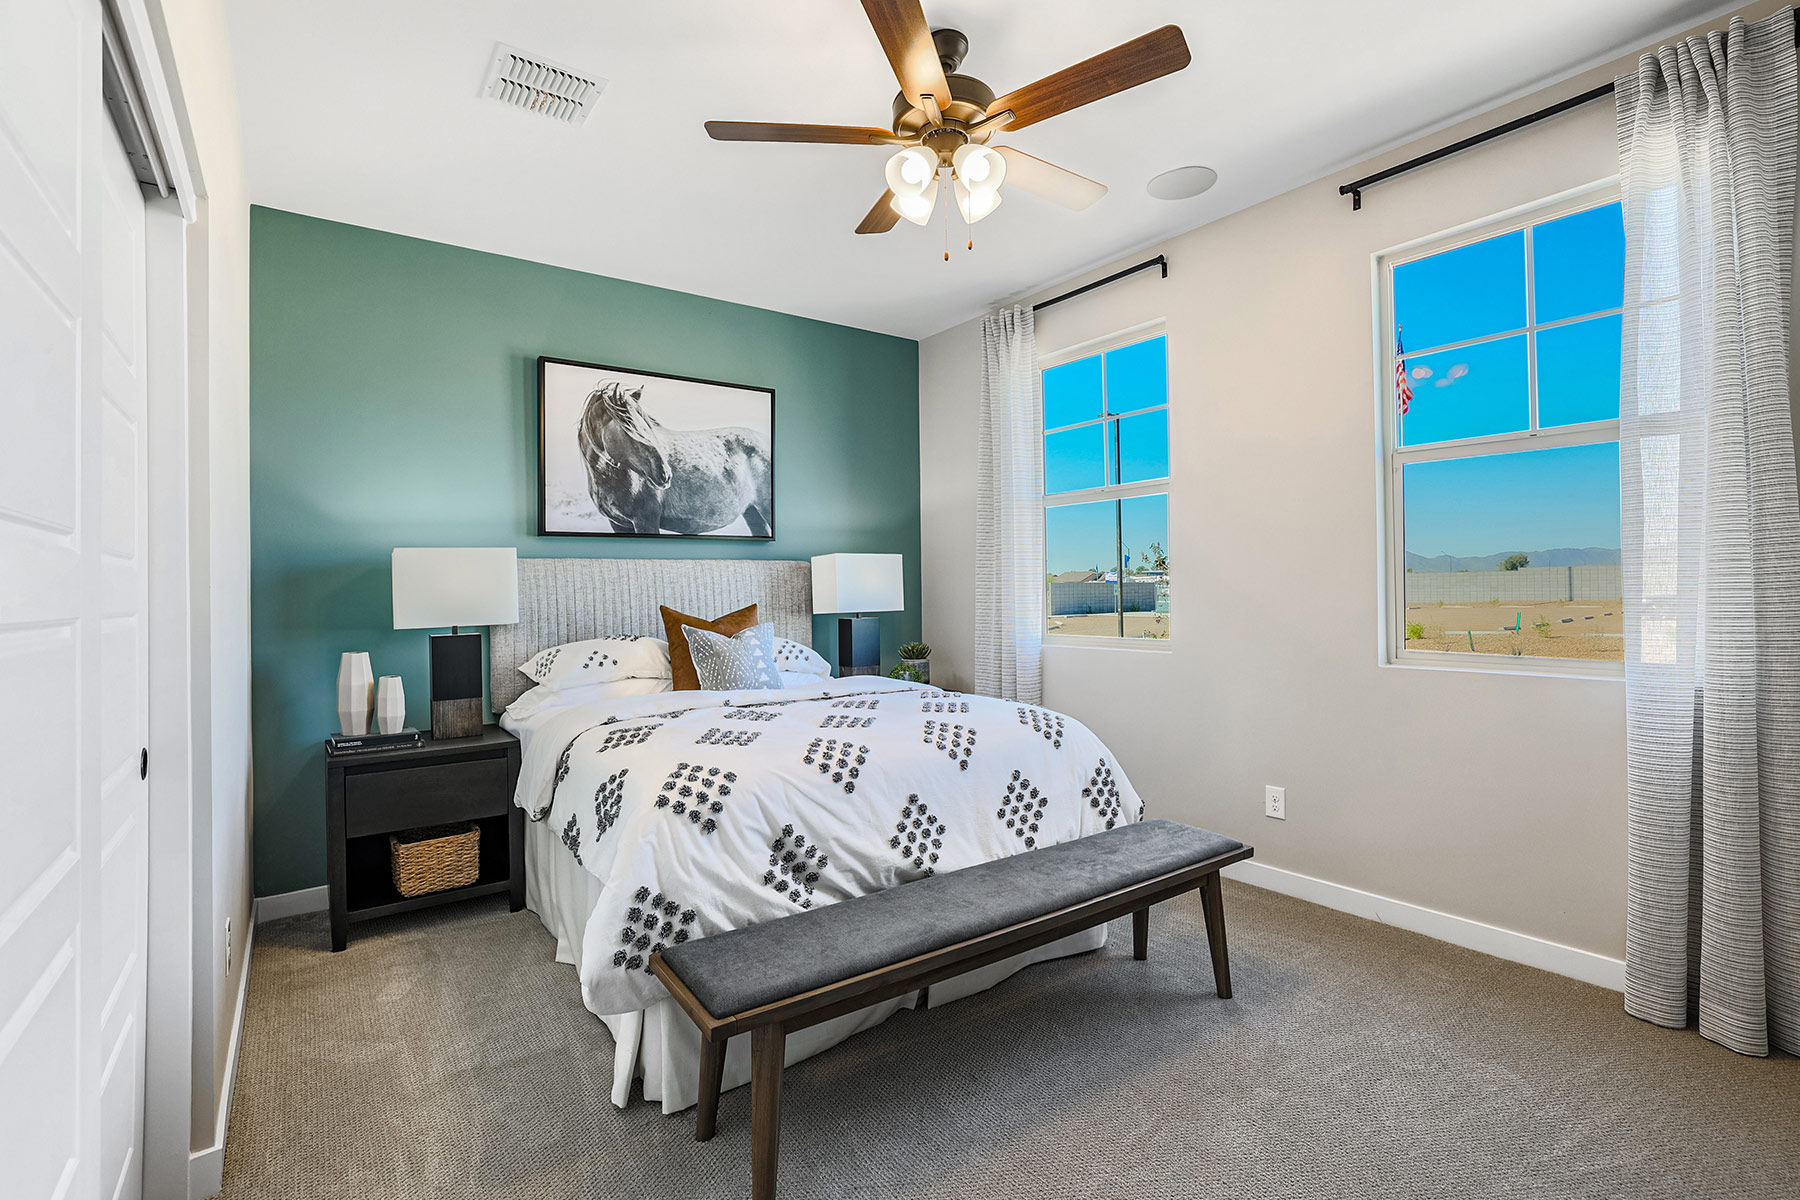 Aries Plan Bedroom at Azure Canyon in Litchfield Park Arizona by Mattamy Homes